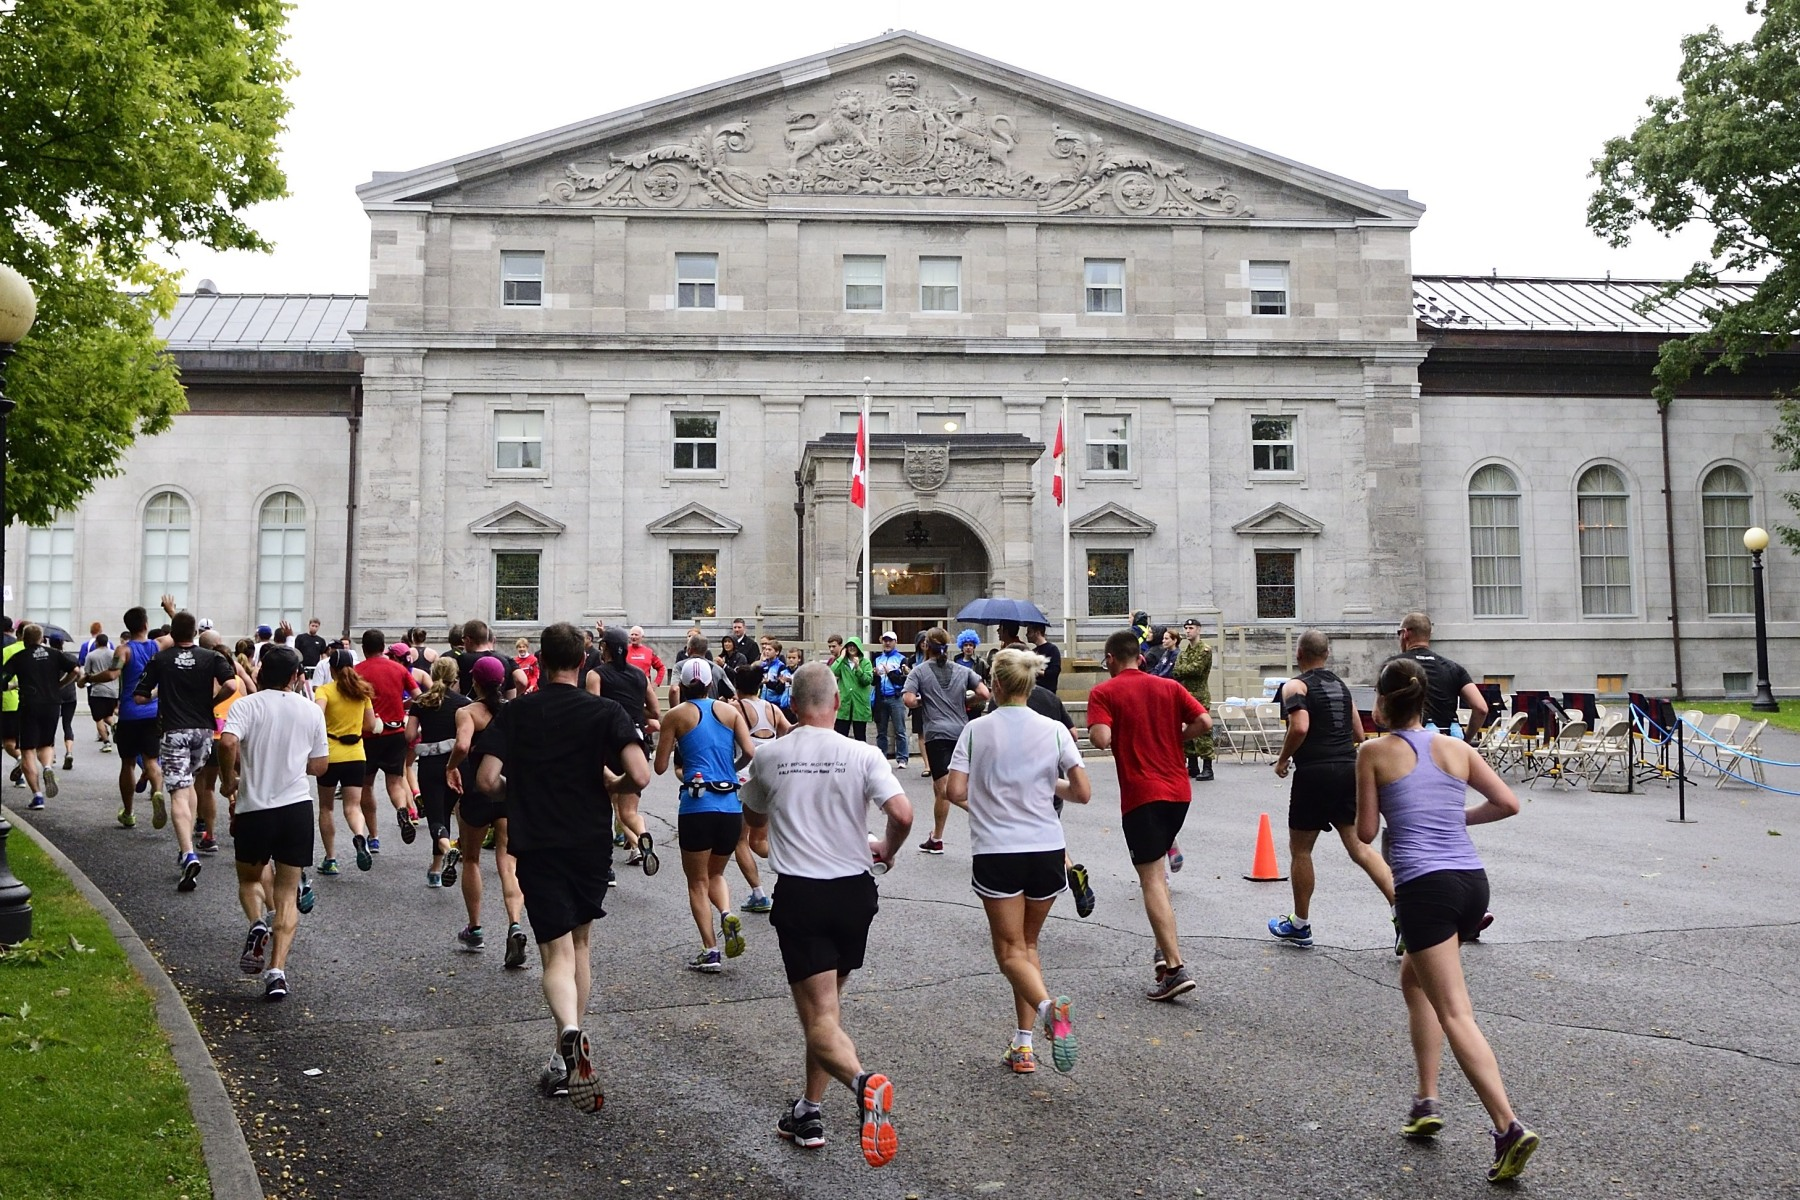 For the first time this year, Rideau Hall, the official residence and workplace of the Governor General, was part of the half-marathon course and hosted a cheering area for members of the public.